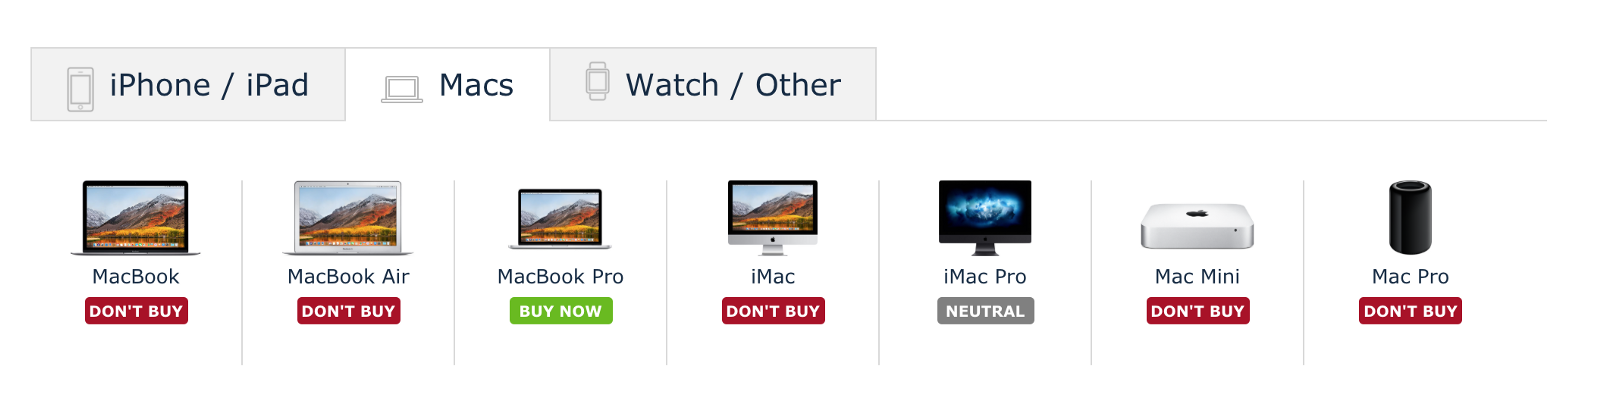 What mac should i buy